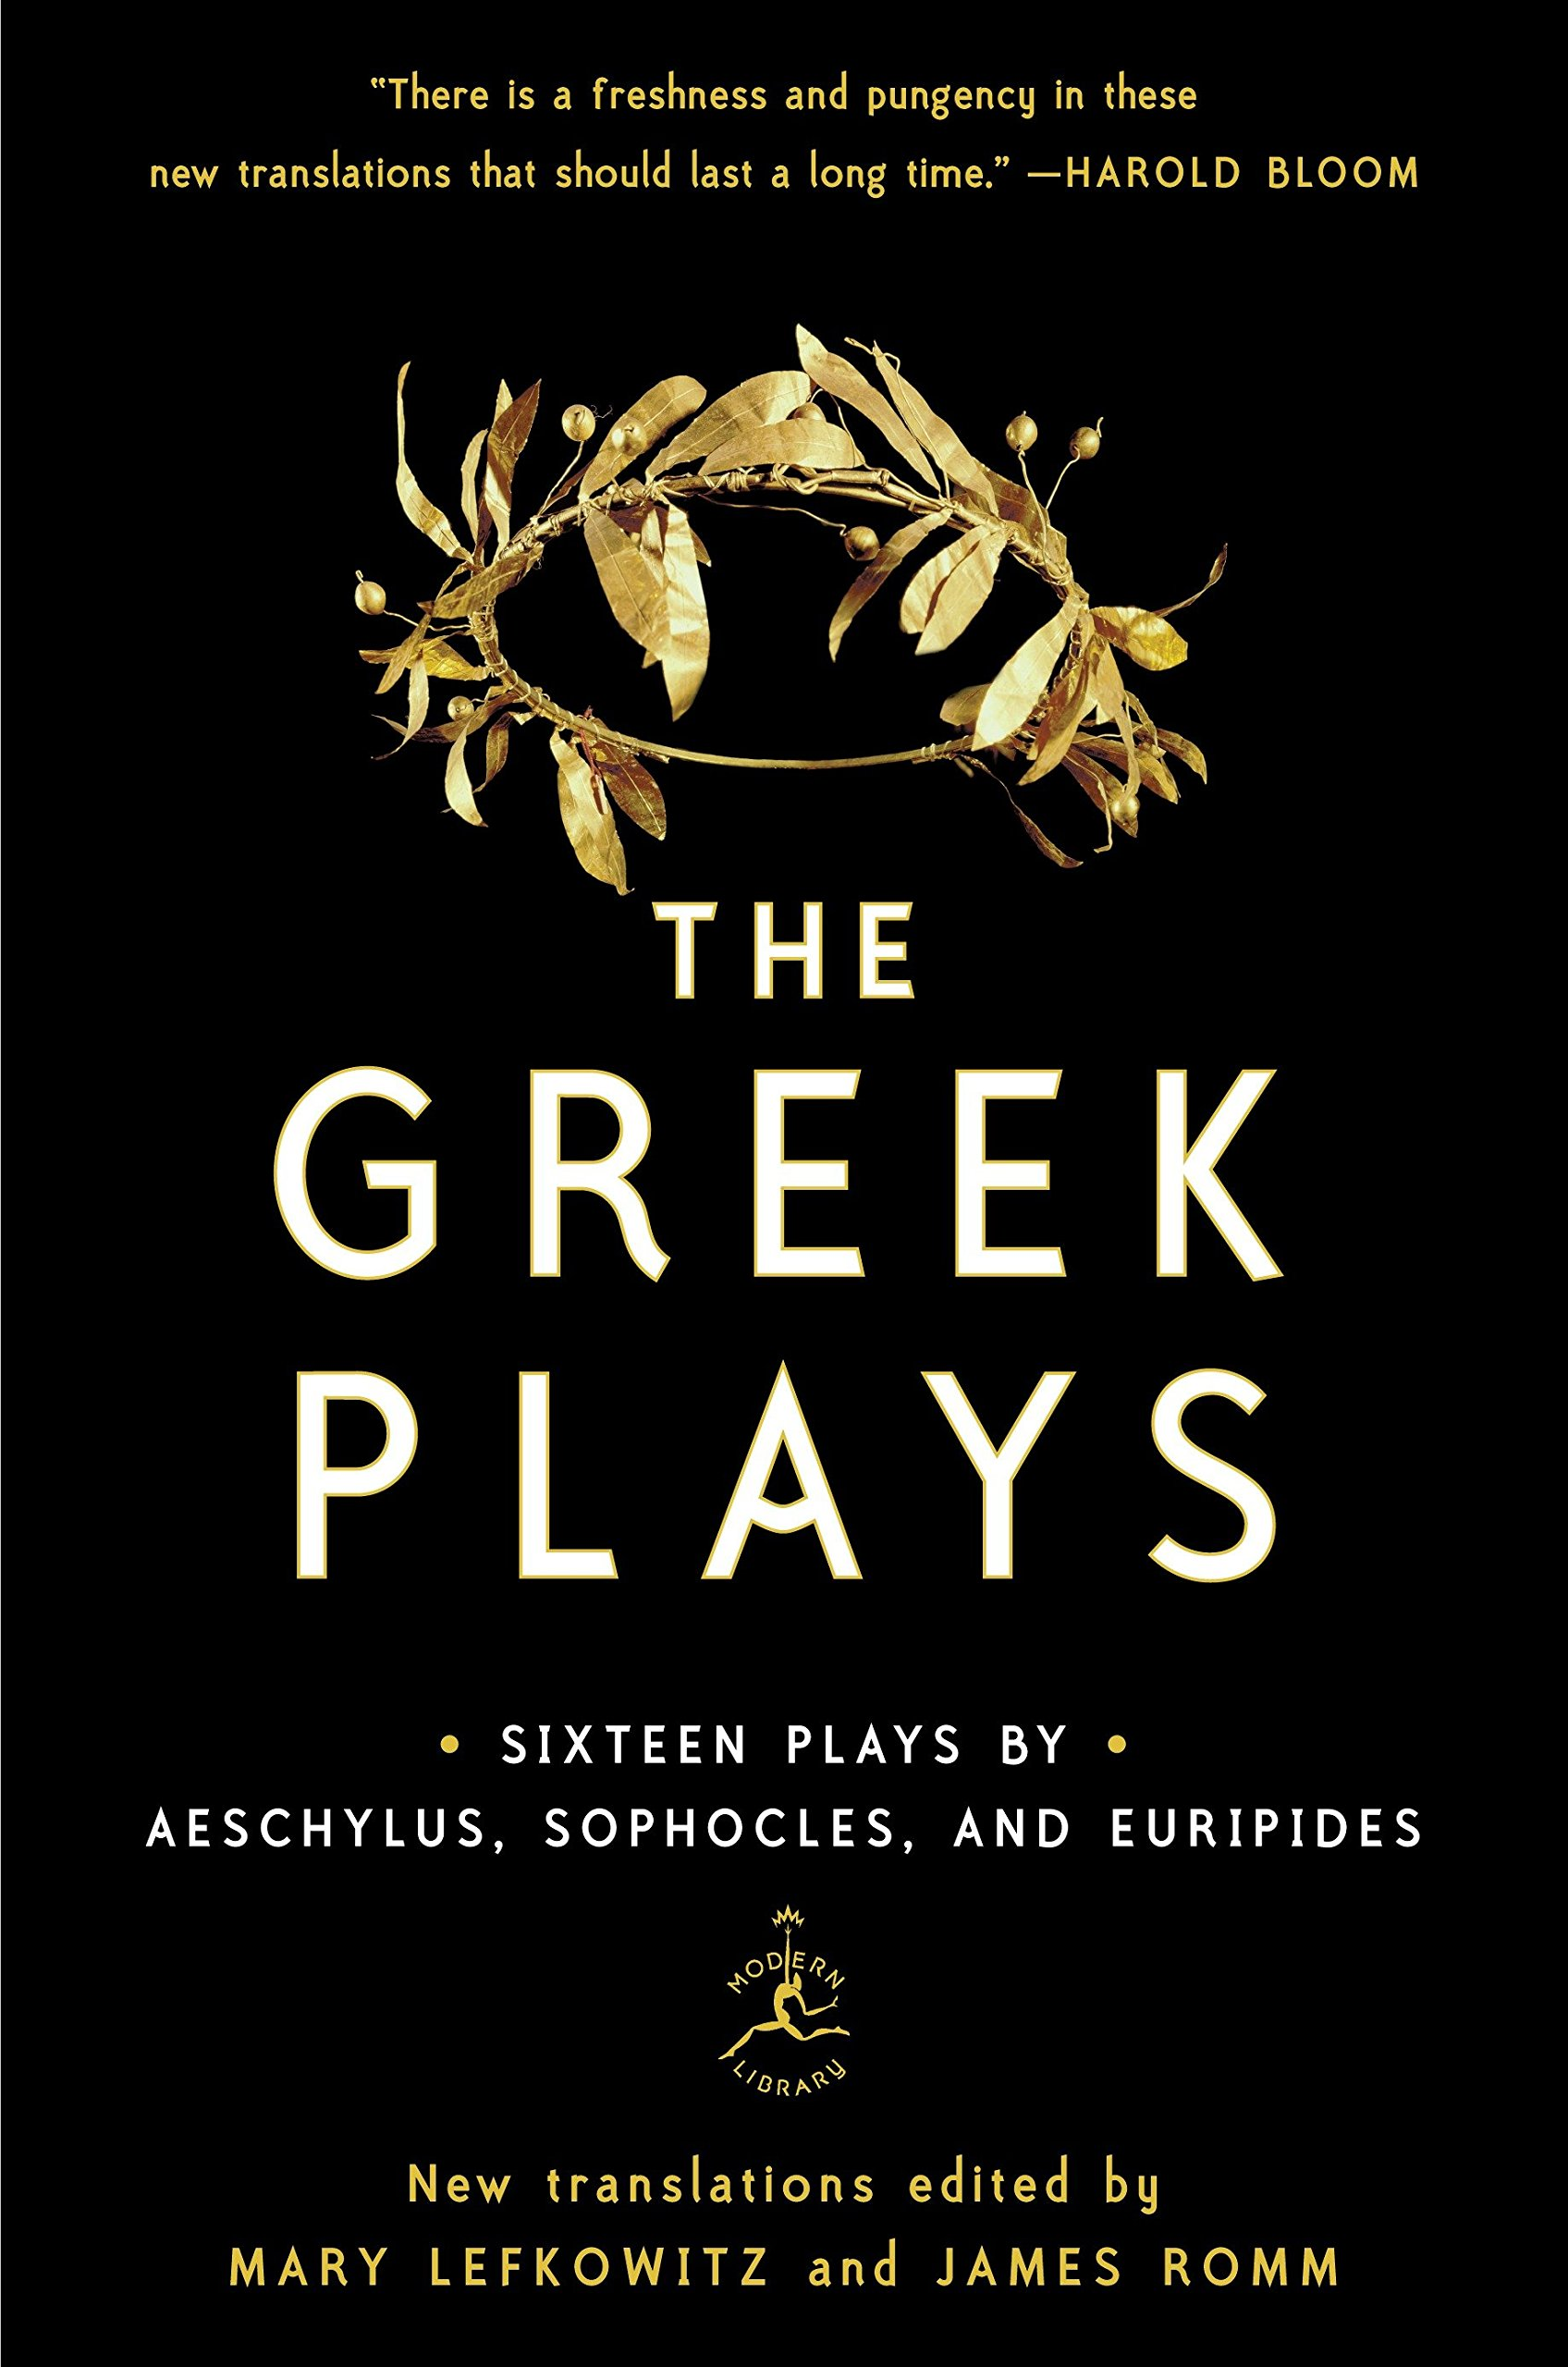 The Greek Plays: Sixteen Plays by Aeschylus Sophocles and Euripides (Modern Library Classics)